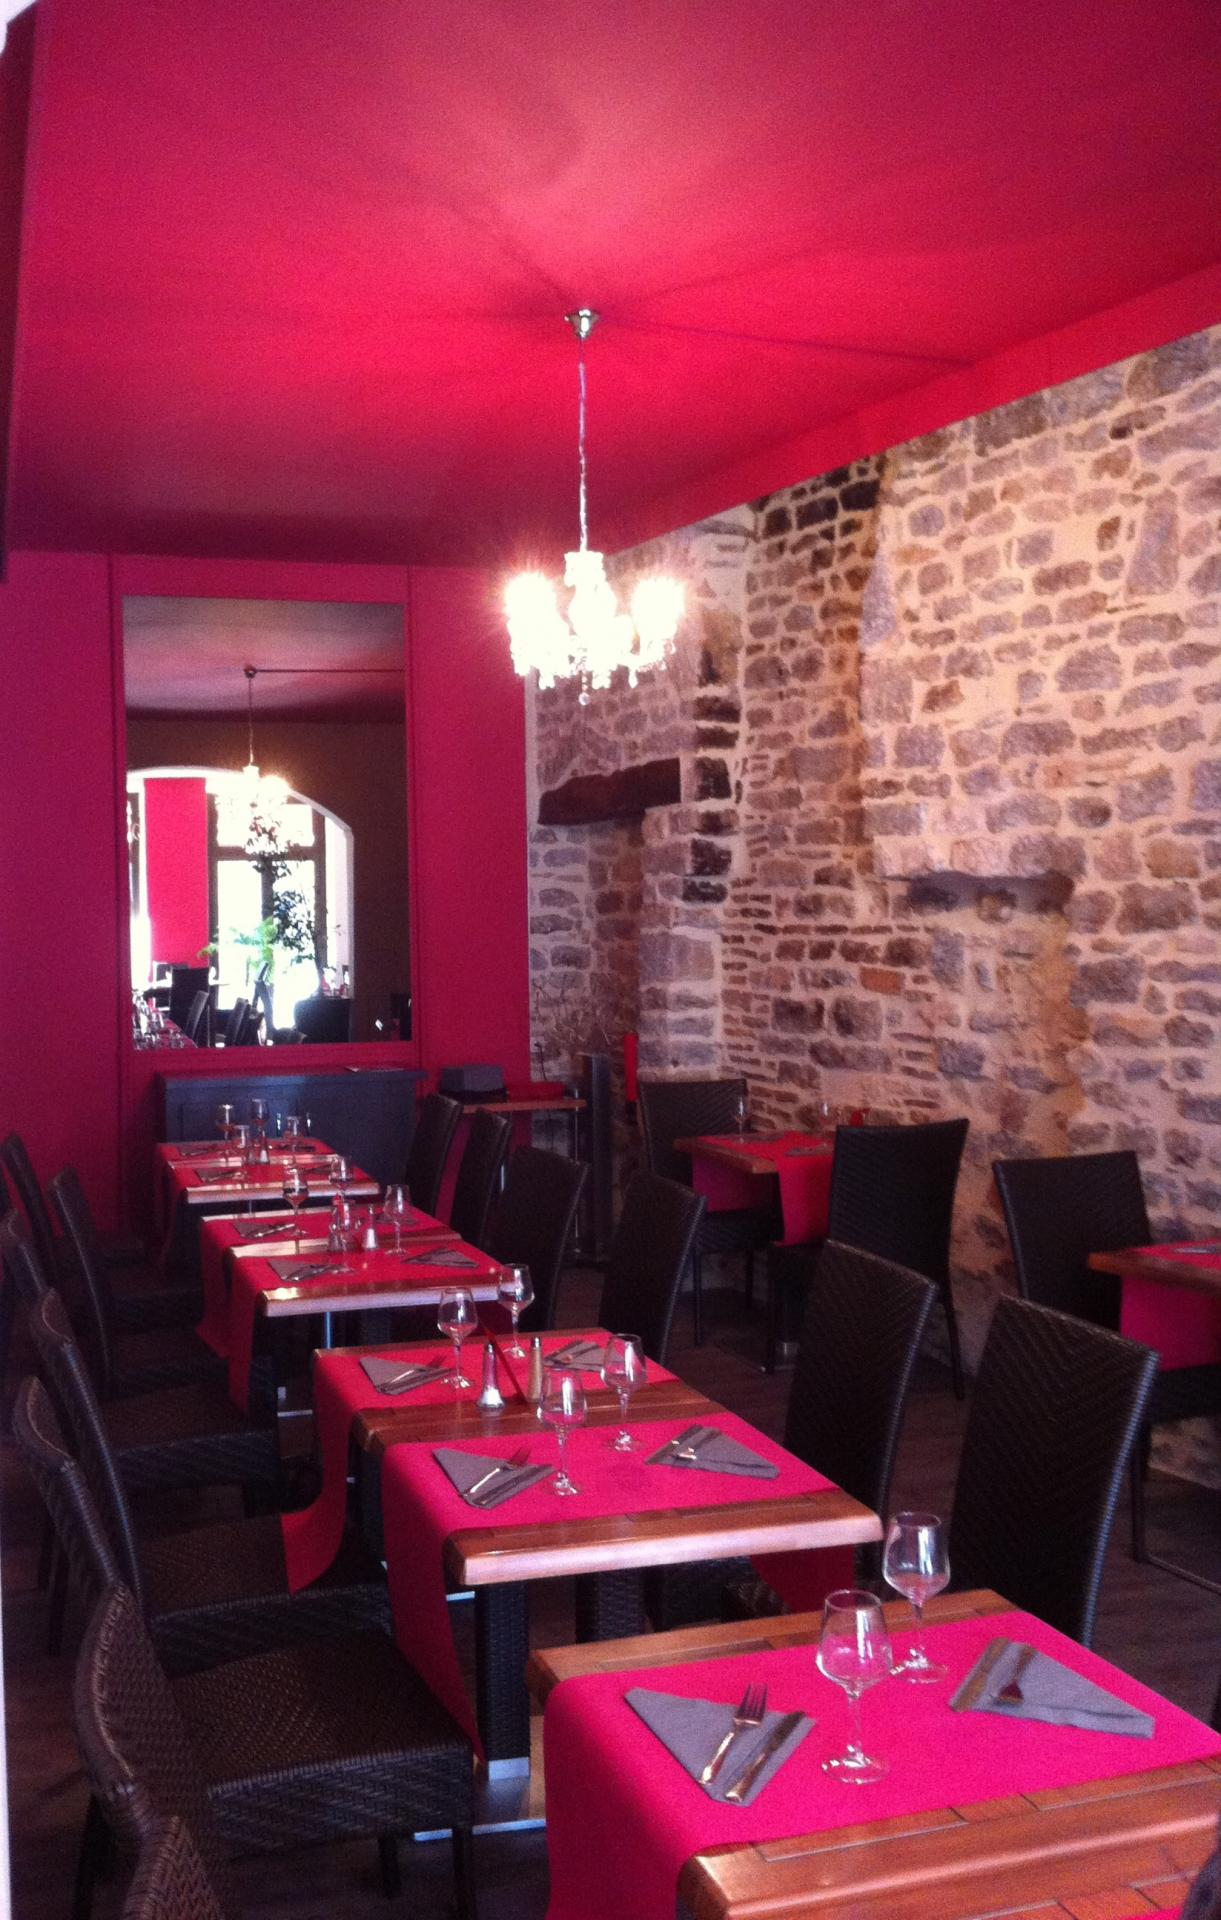 Decoration fuschia pierre restaurant semur en auxois hannahelizabethinteriordesign